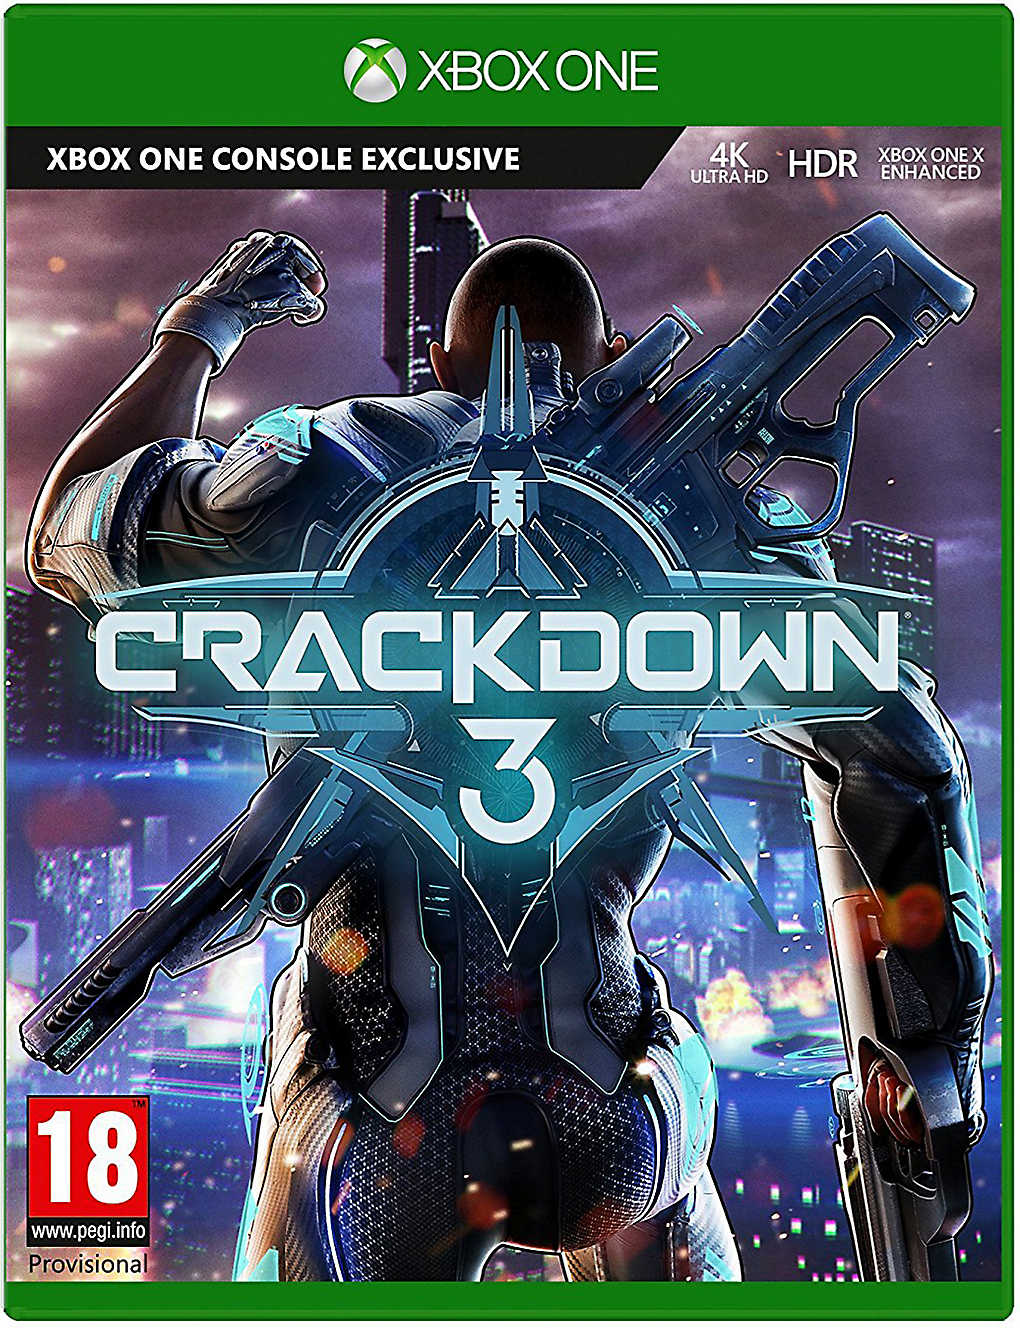 MICROSOFT: Crackdown 3 Xbox One game